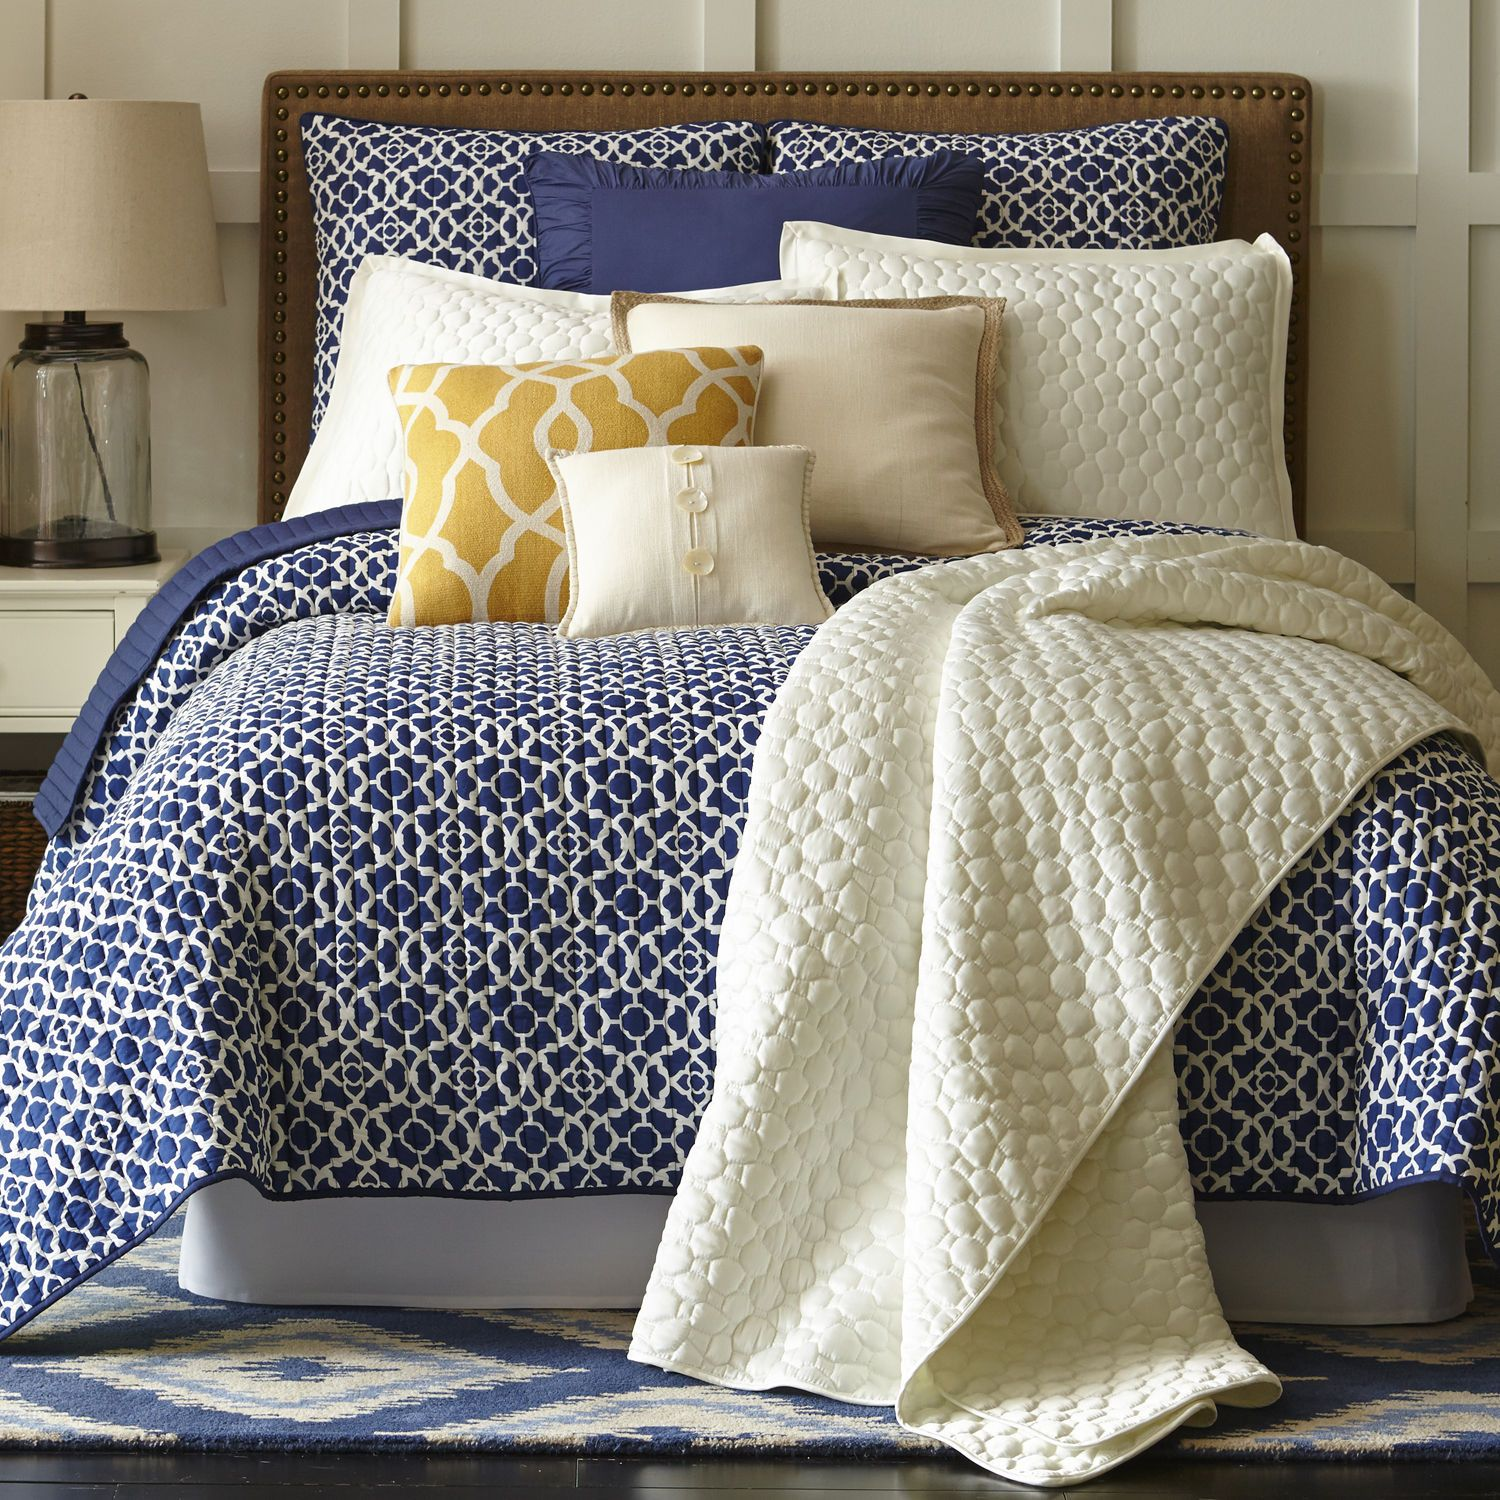 Interior Pier One Imports Bedding reece reversible bedding quilt indigo pier 1 imports home imports